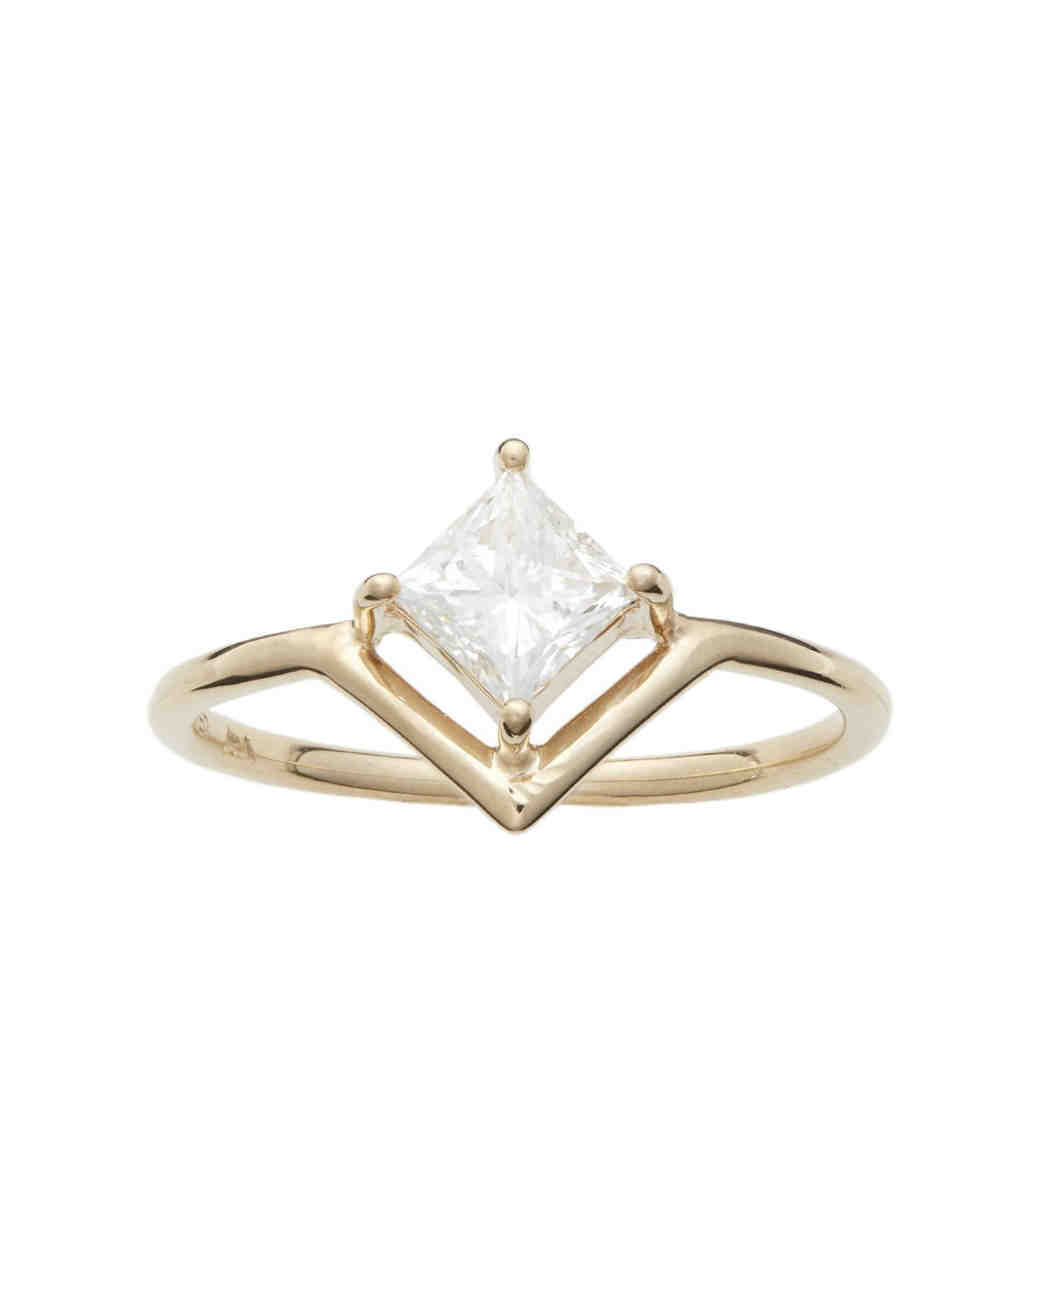 Nestled Princess-Cut Diamond Ring